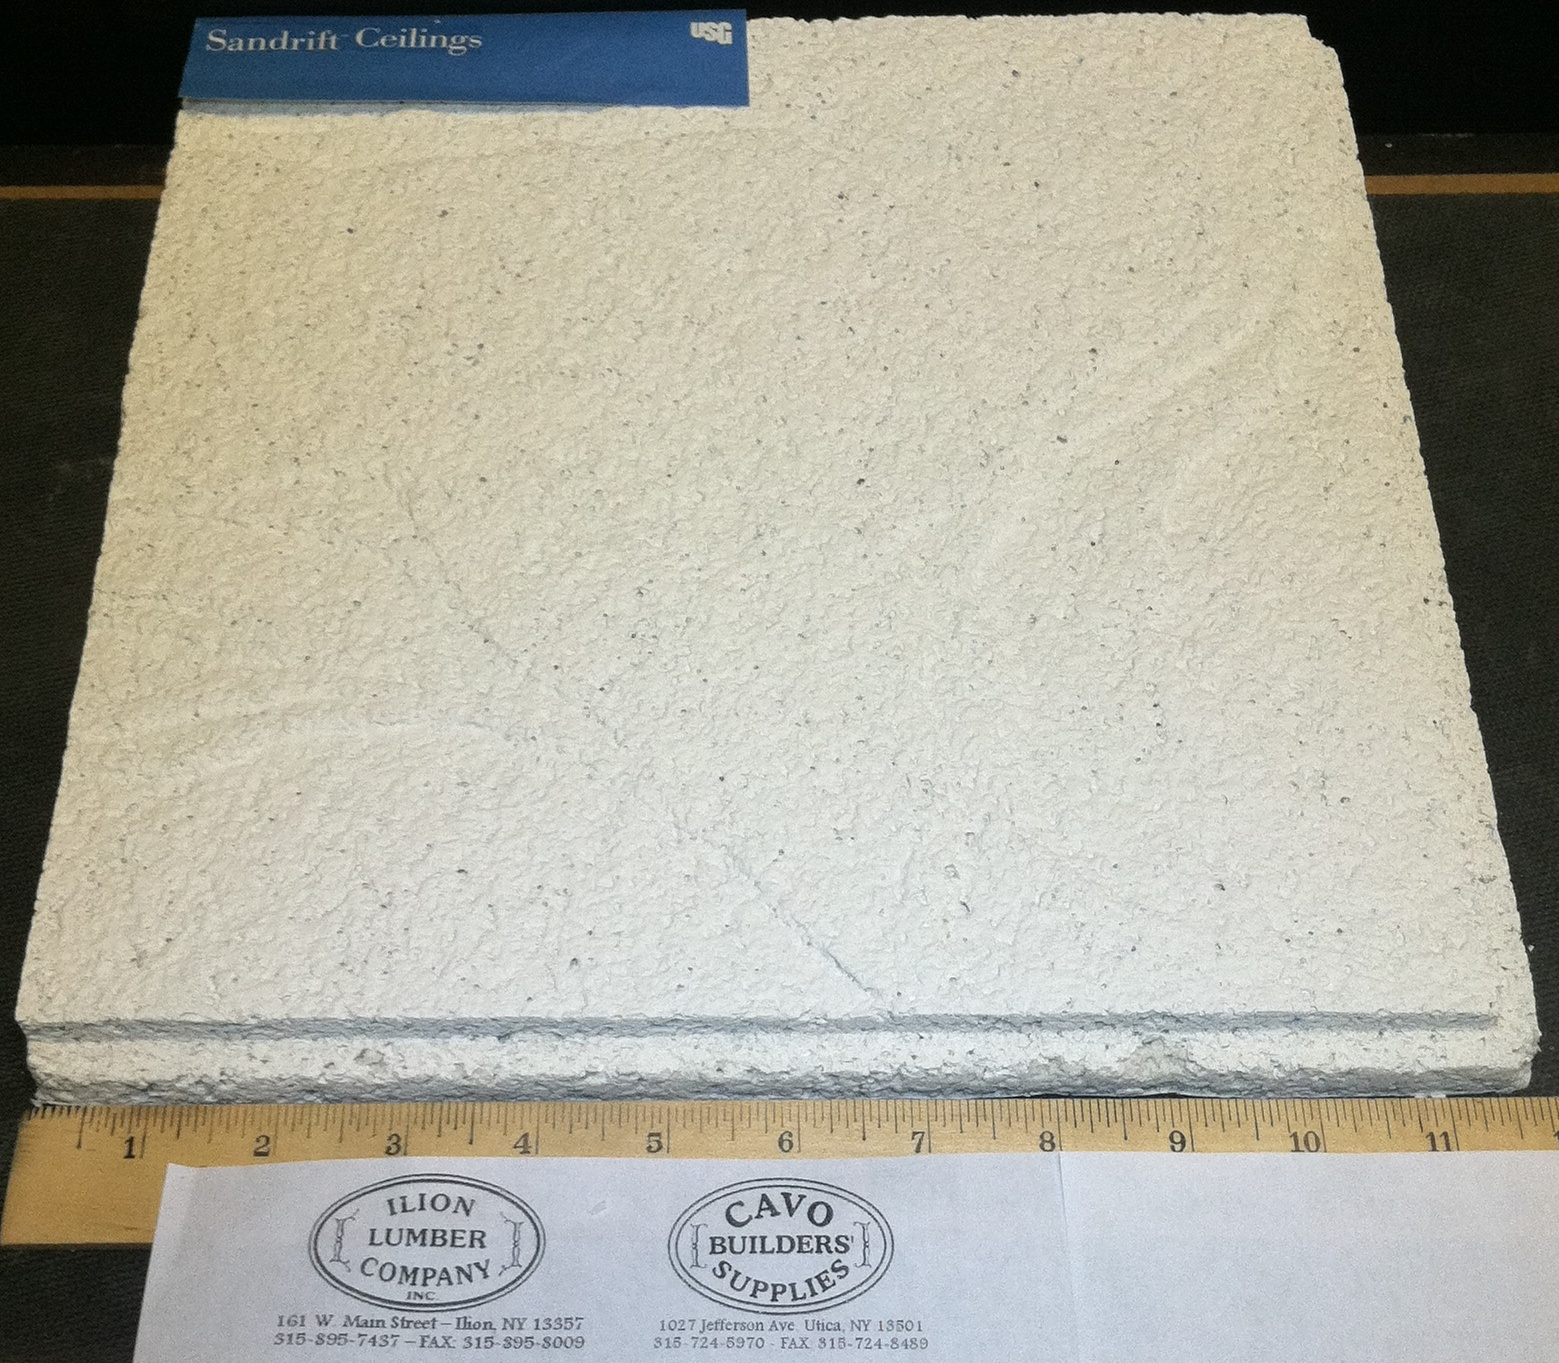 Ceiling tile ilion lumber company usg twill ceiling tile dailygadgetfo Gallery